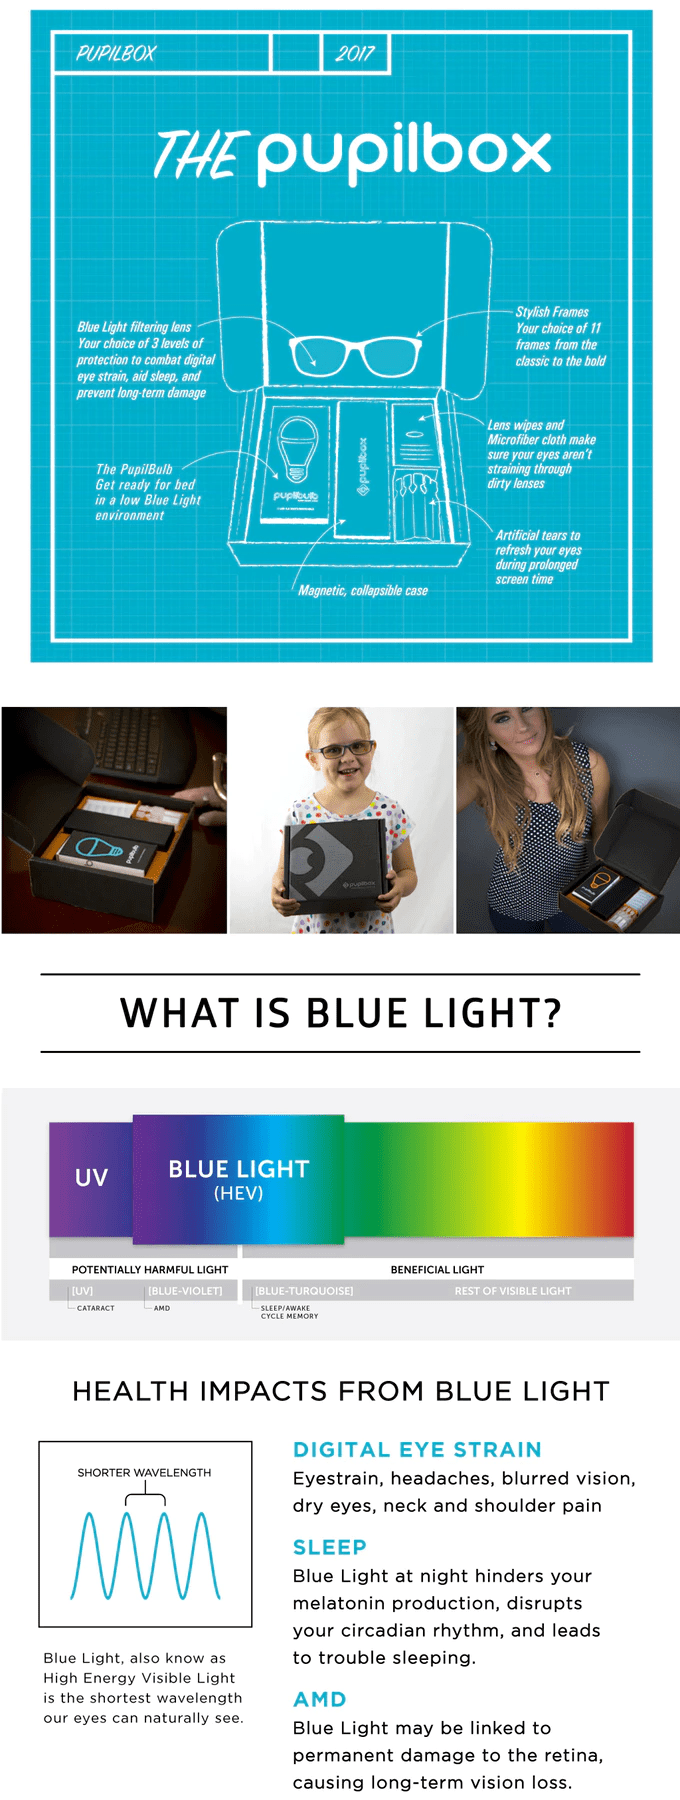 pupilbox - Take Control of Blue Light to Take Control of Your Success